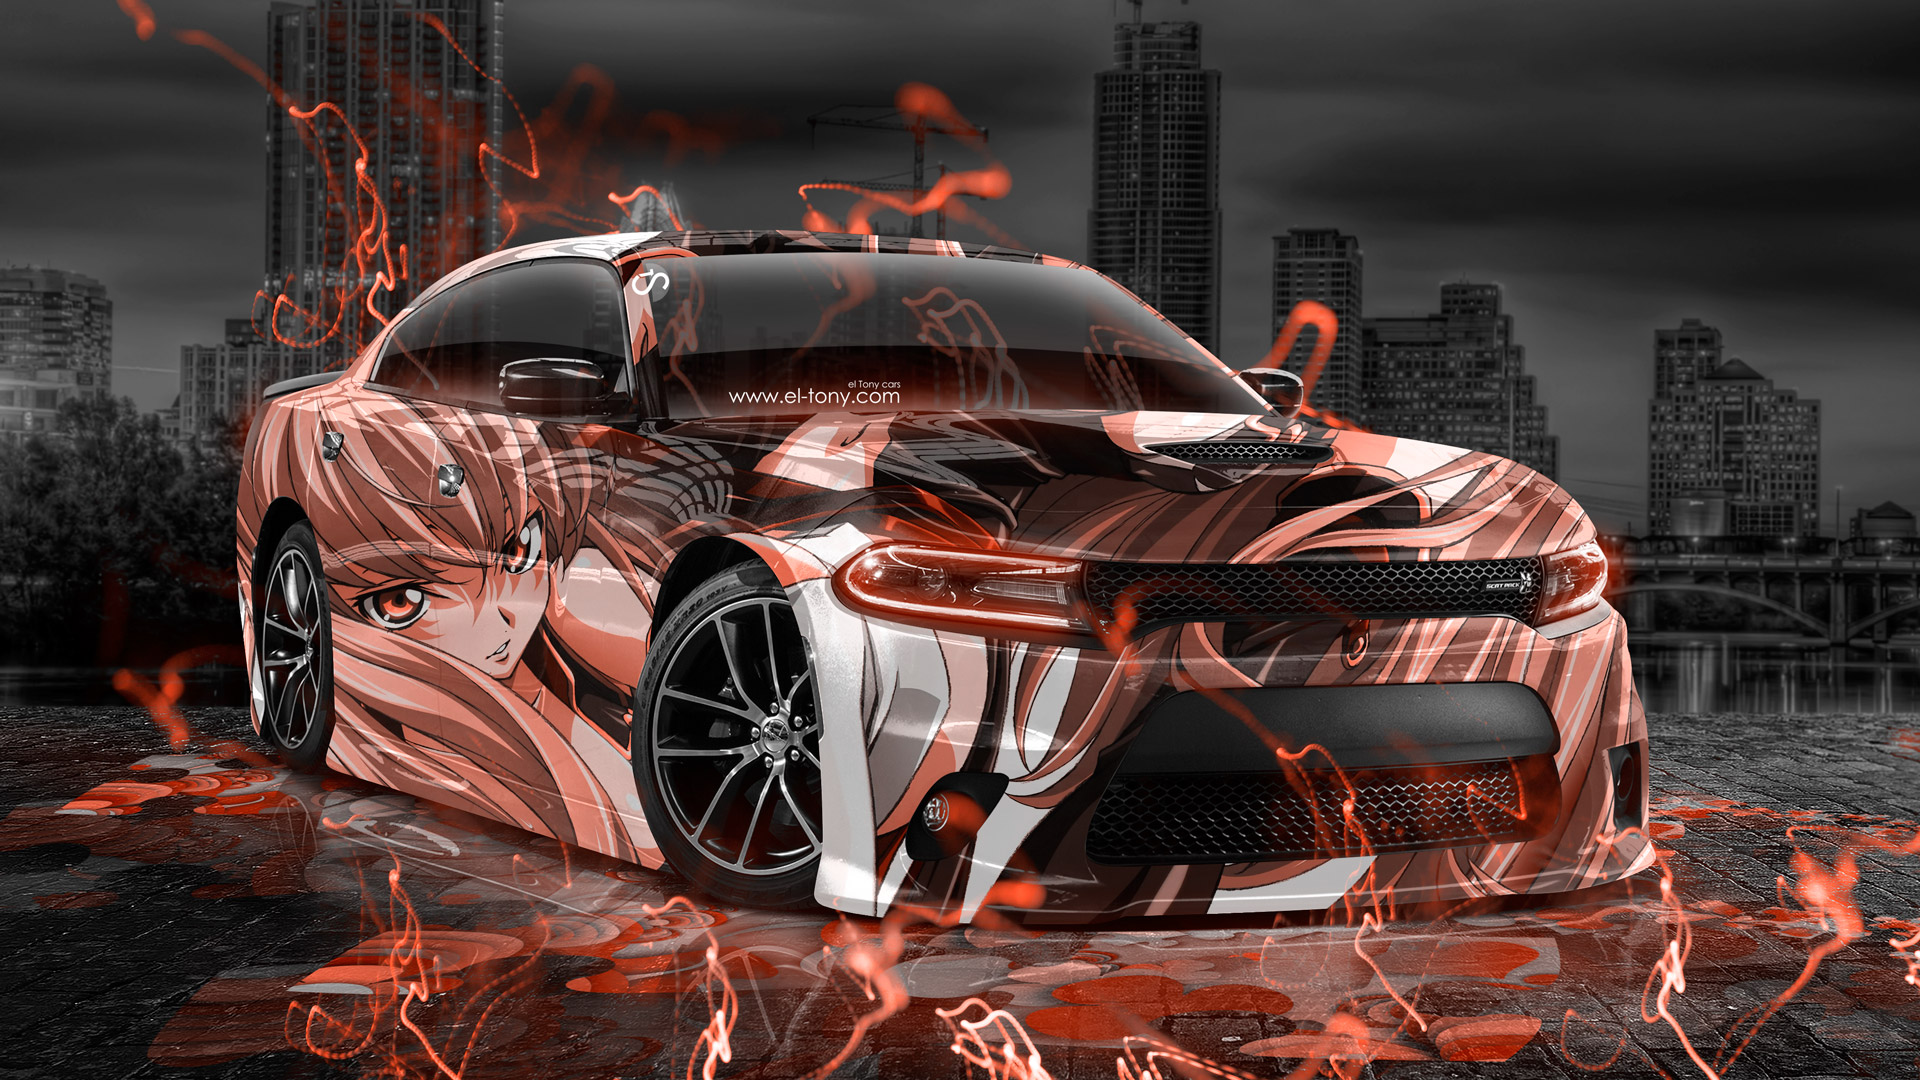 Dodge Charger Rt Muscle Anime Girl Aerography City Car